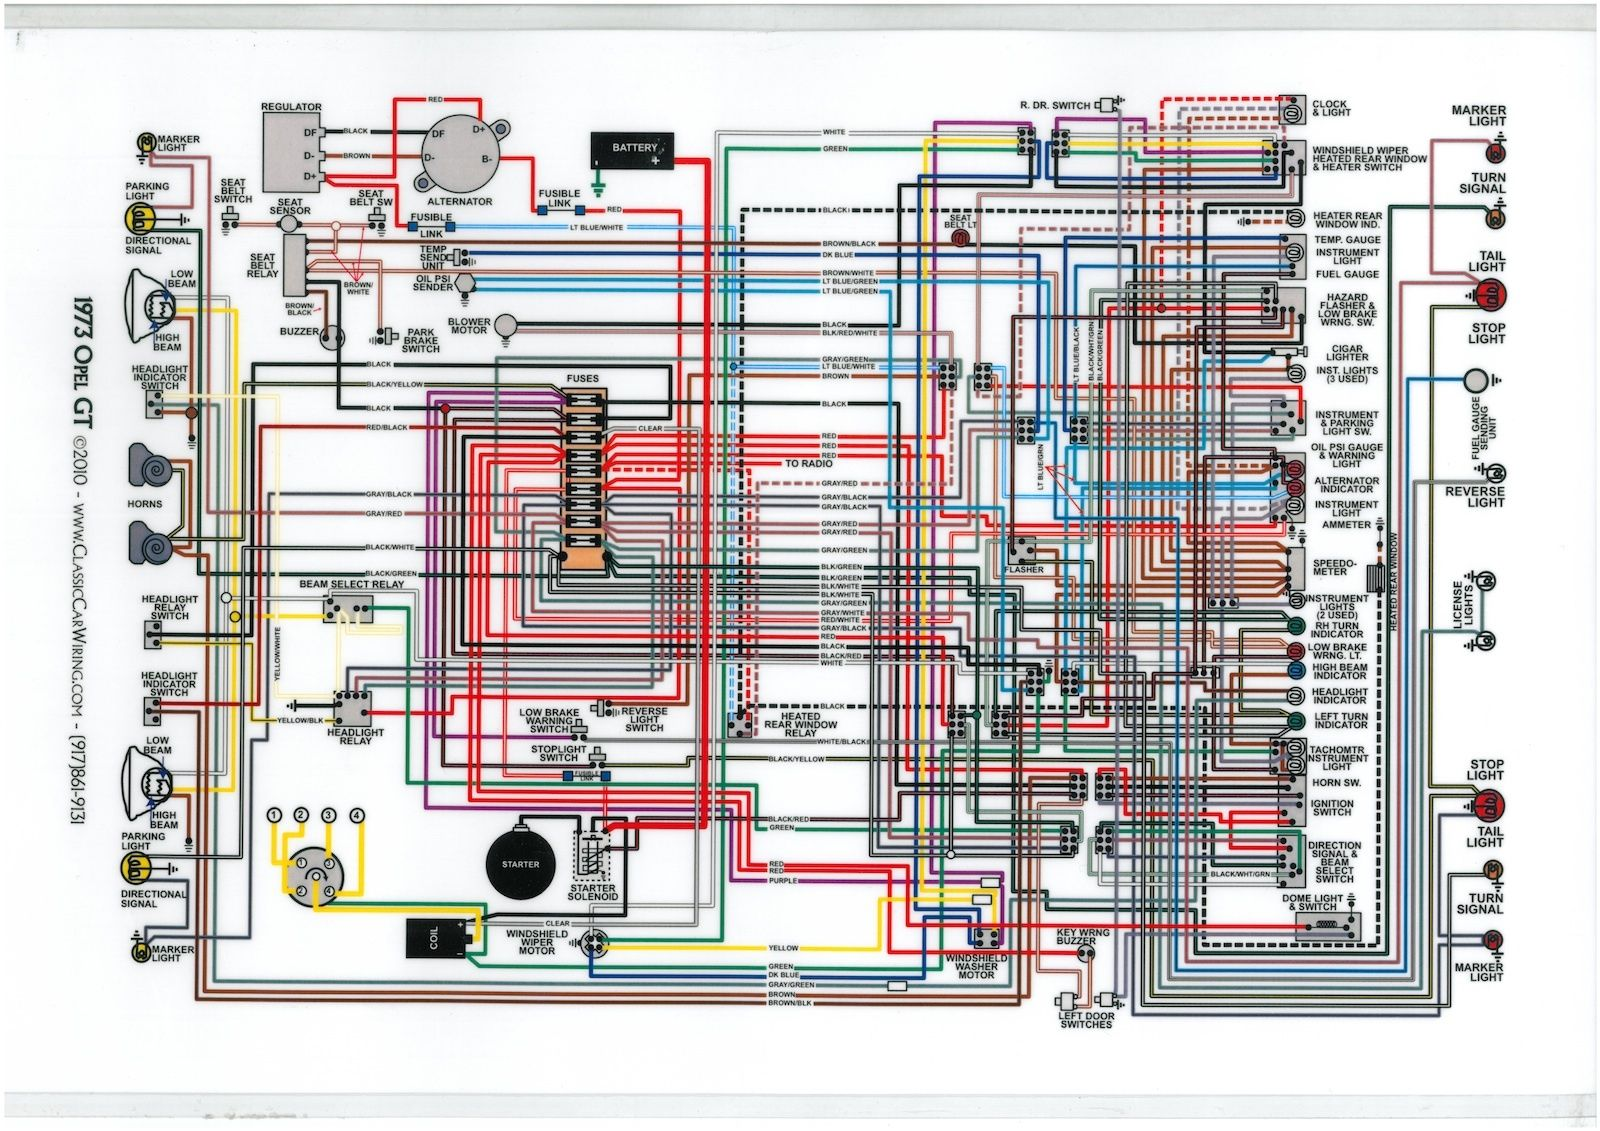 Opel Ac Wiring Diagram - Previous Wiring Diagram Opel Ac Wiring Diagram on